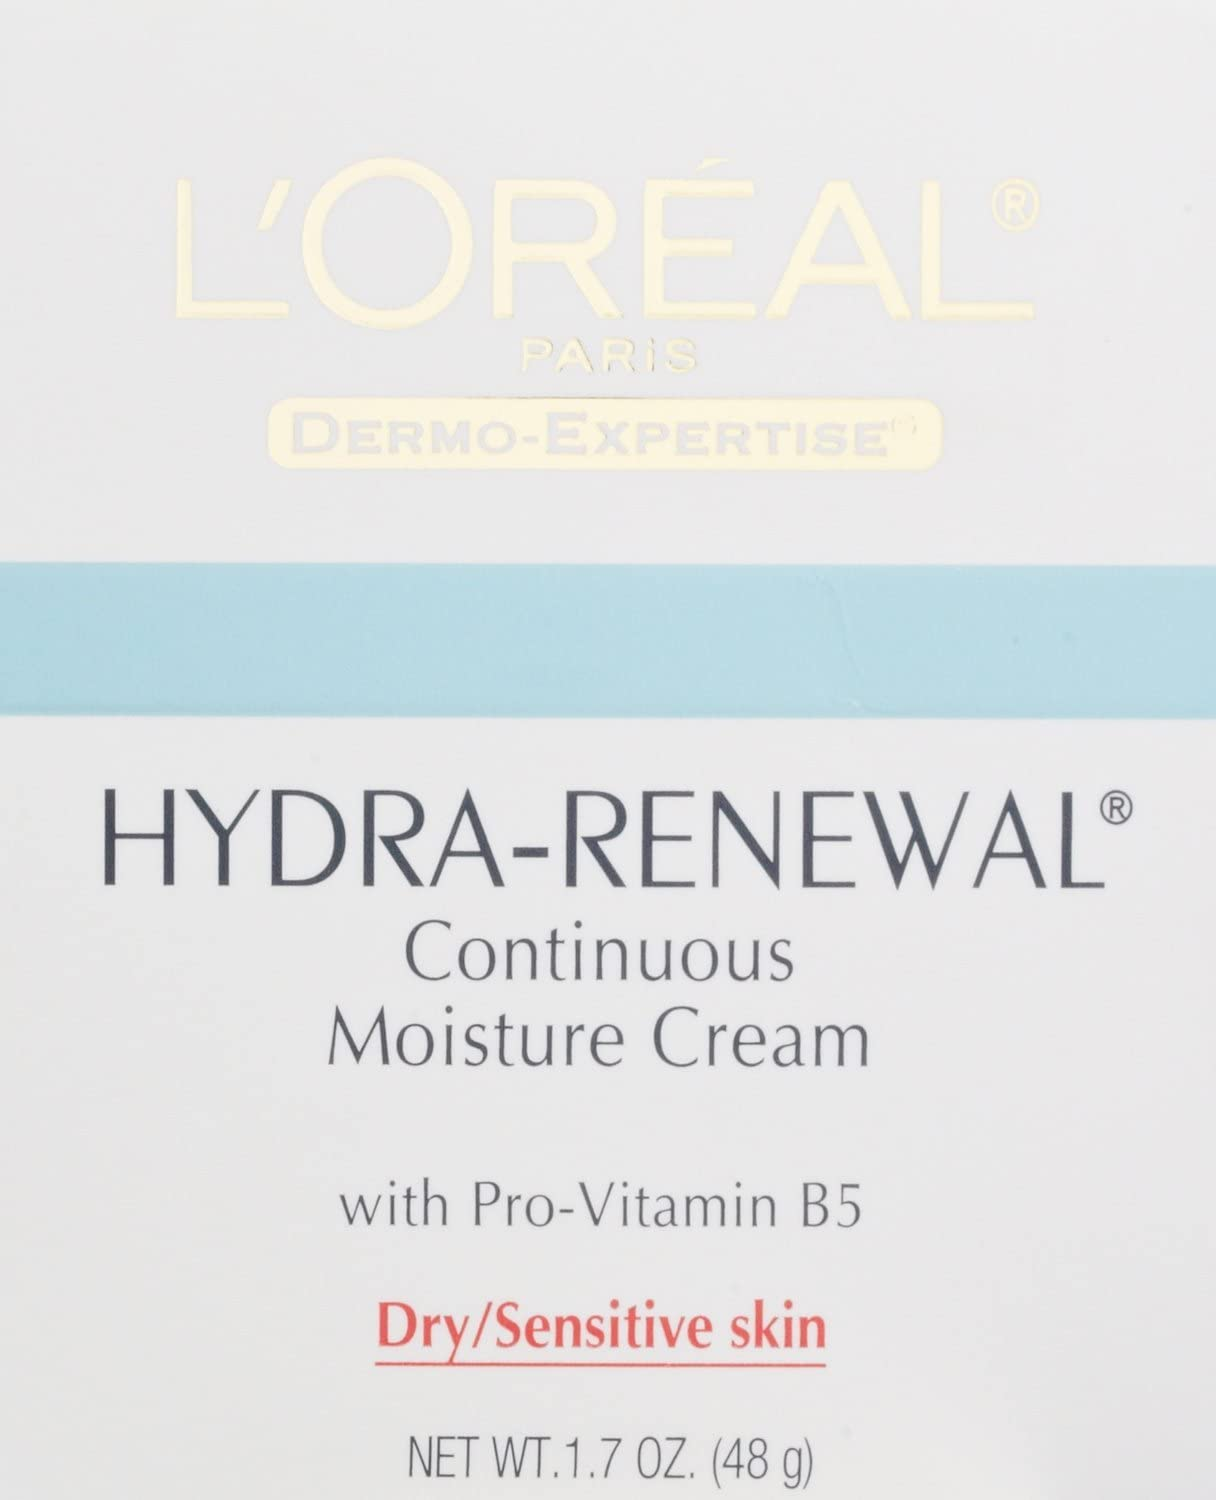 L'oreal L'Oreal Dermo-Expertise Hydra-Renewal Continuous Moisture Cream, 1.7 oz (Pack of 2)